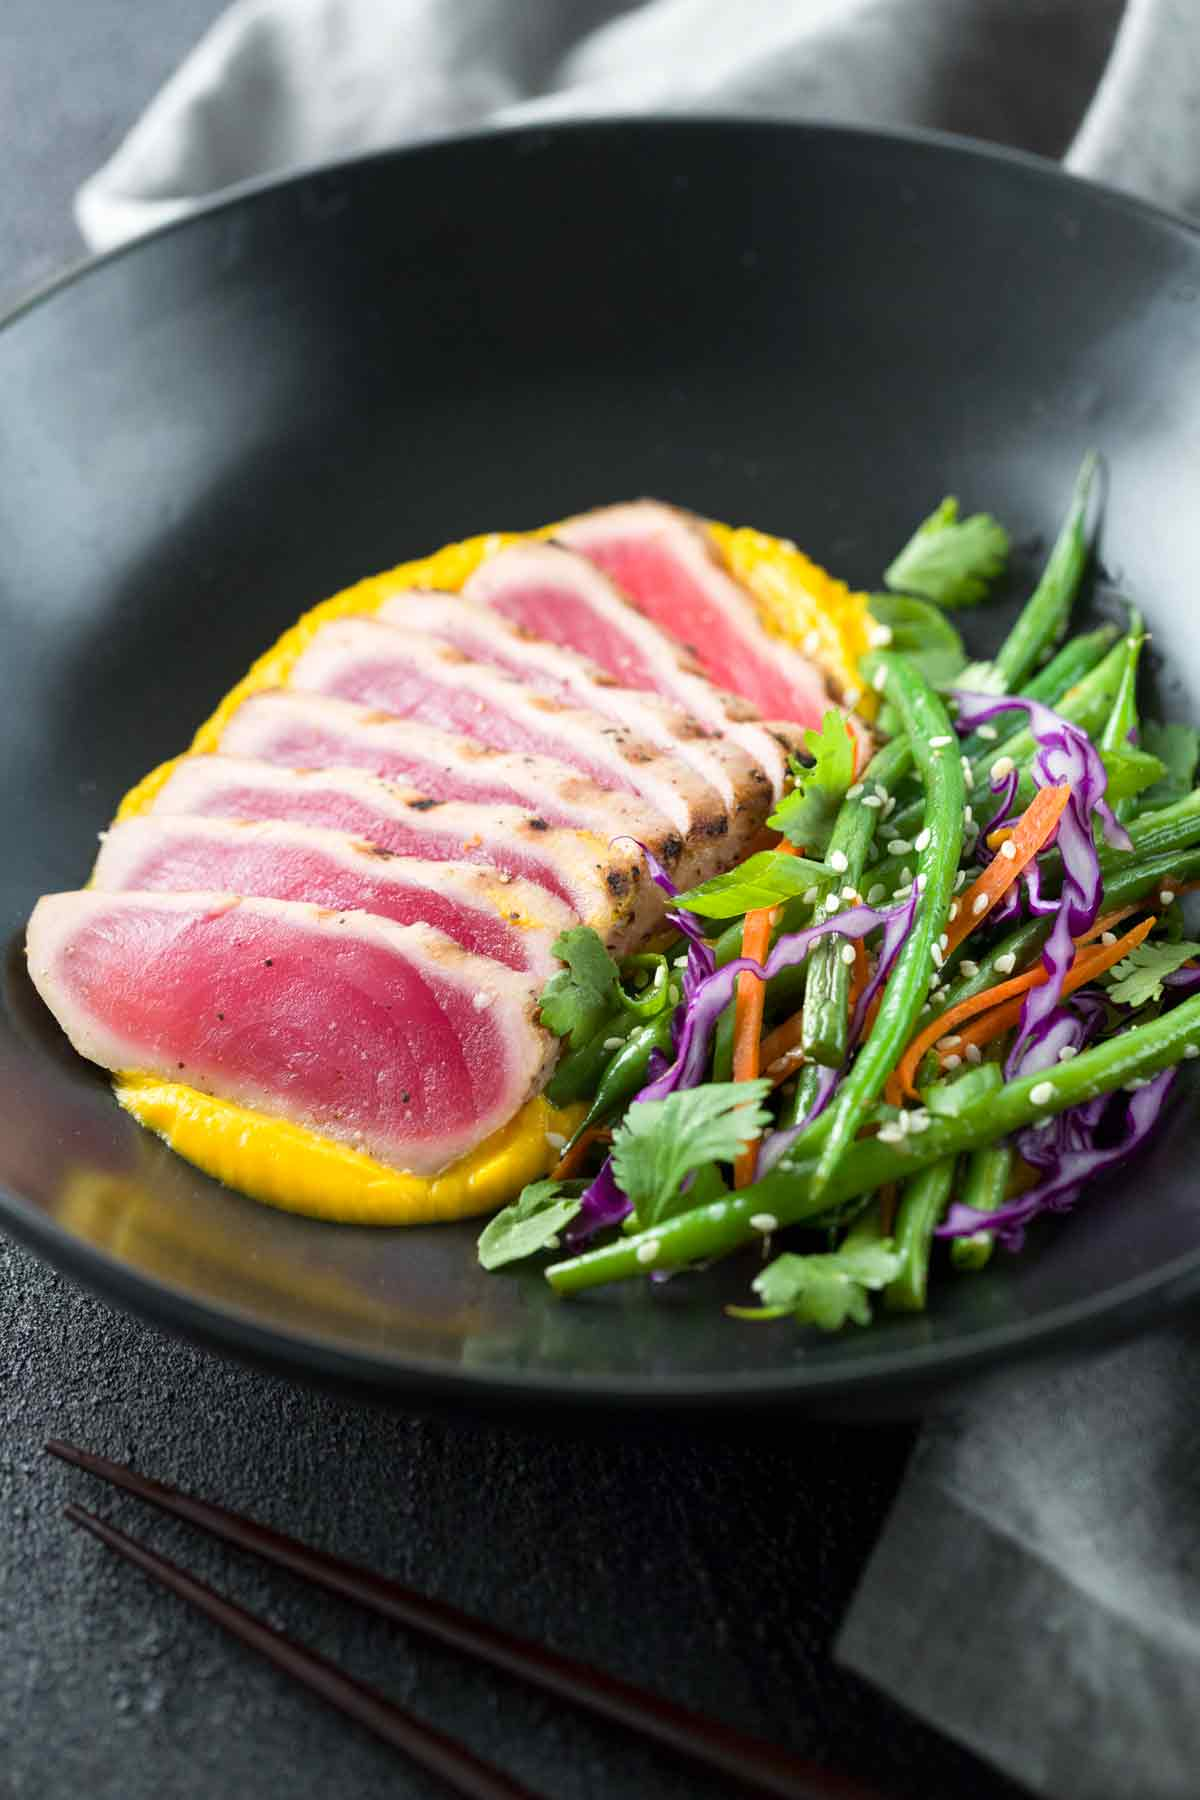 Seared Ahi Tuna with Crispy Sesame Green Beans - A gourmet recipe made right at home! Silky cauliflower carrot ginger puree adds a touch of elegance with ease. | jessicagavin.com